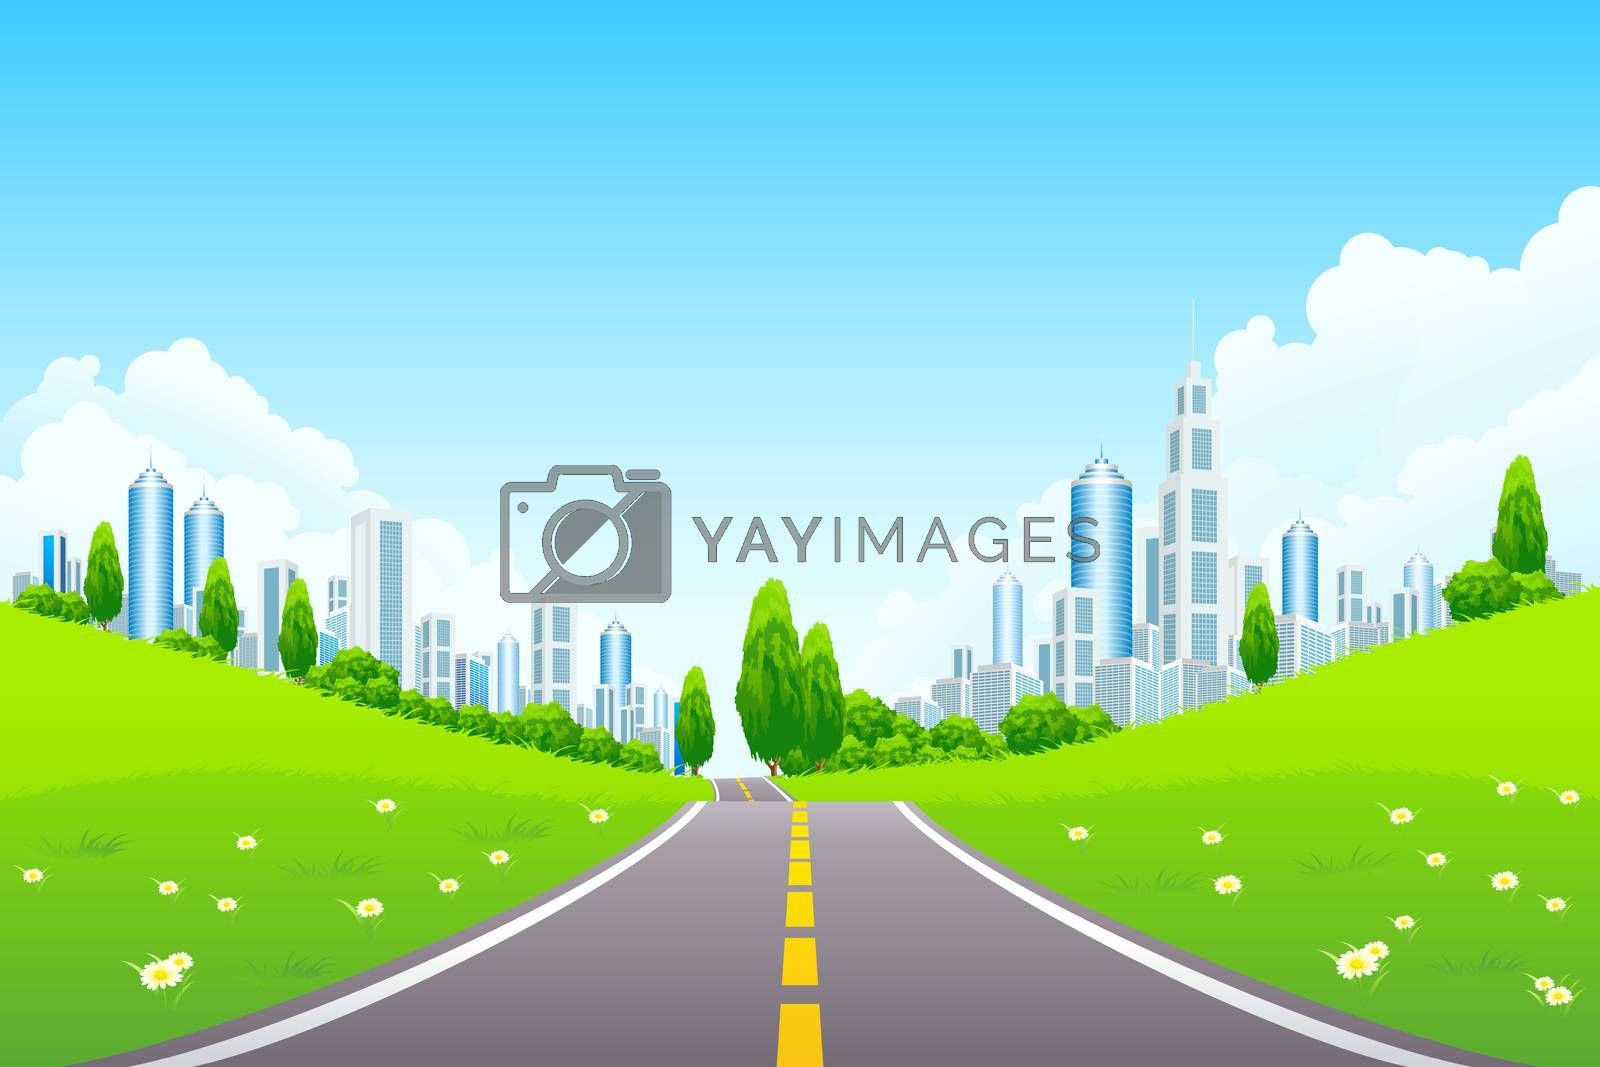 City Landscape with Trees and Road by WaD